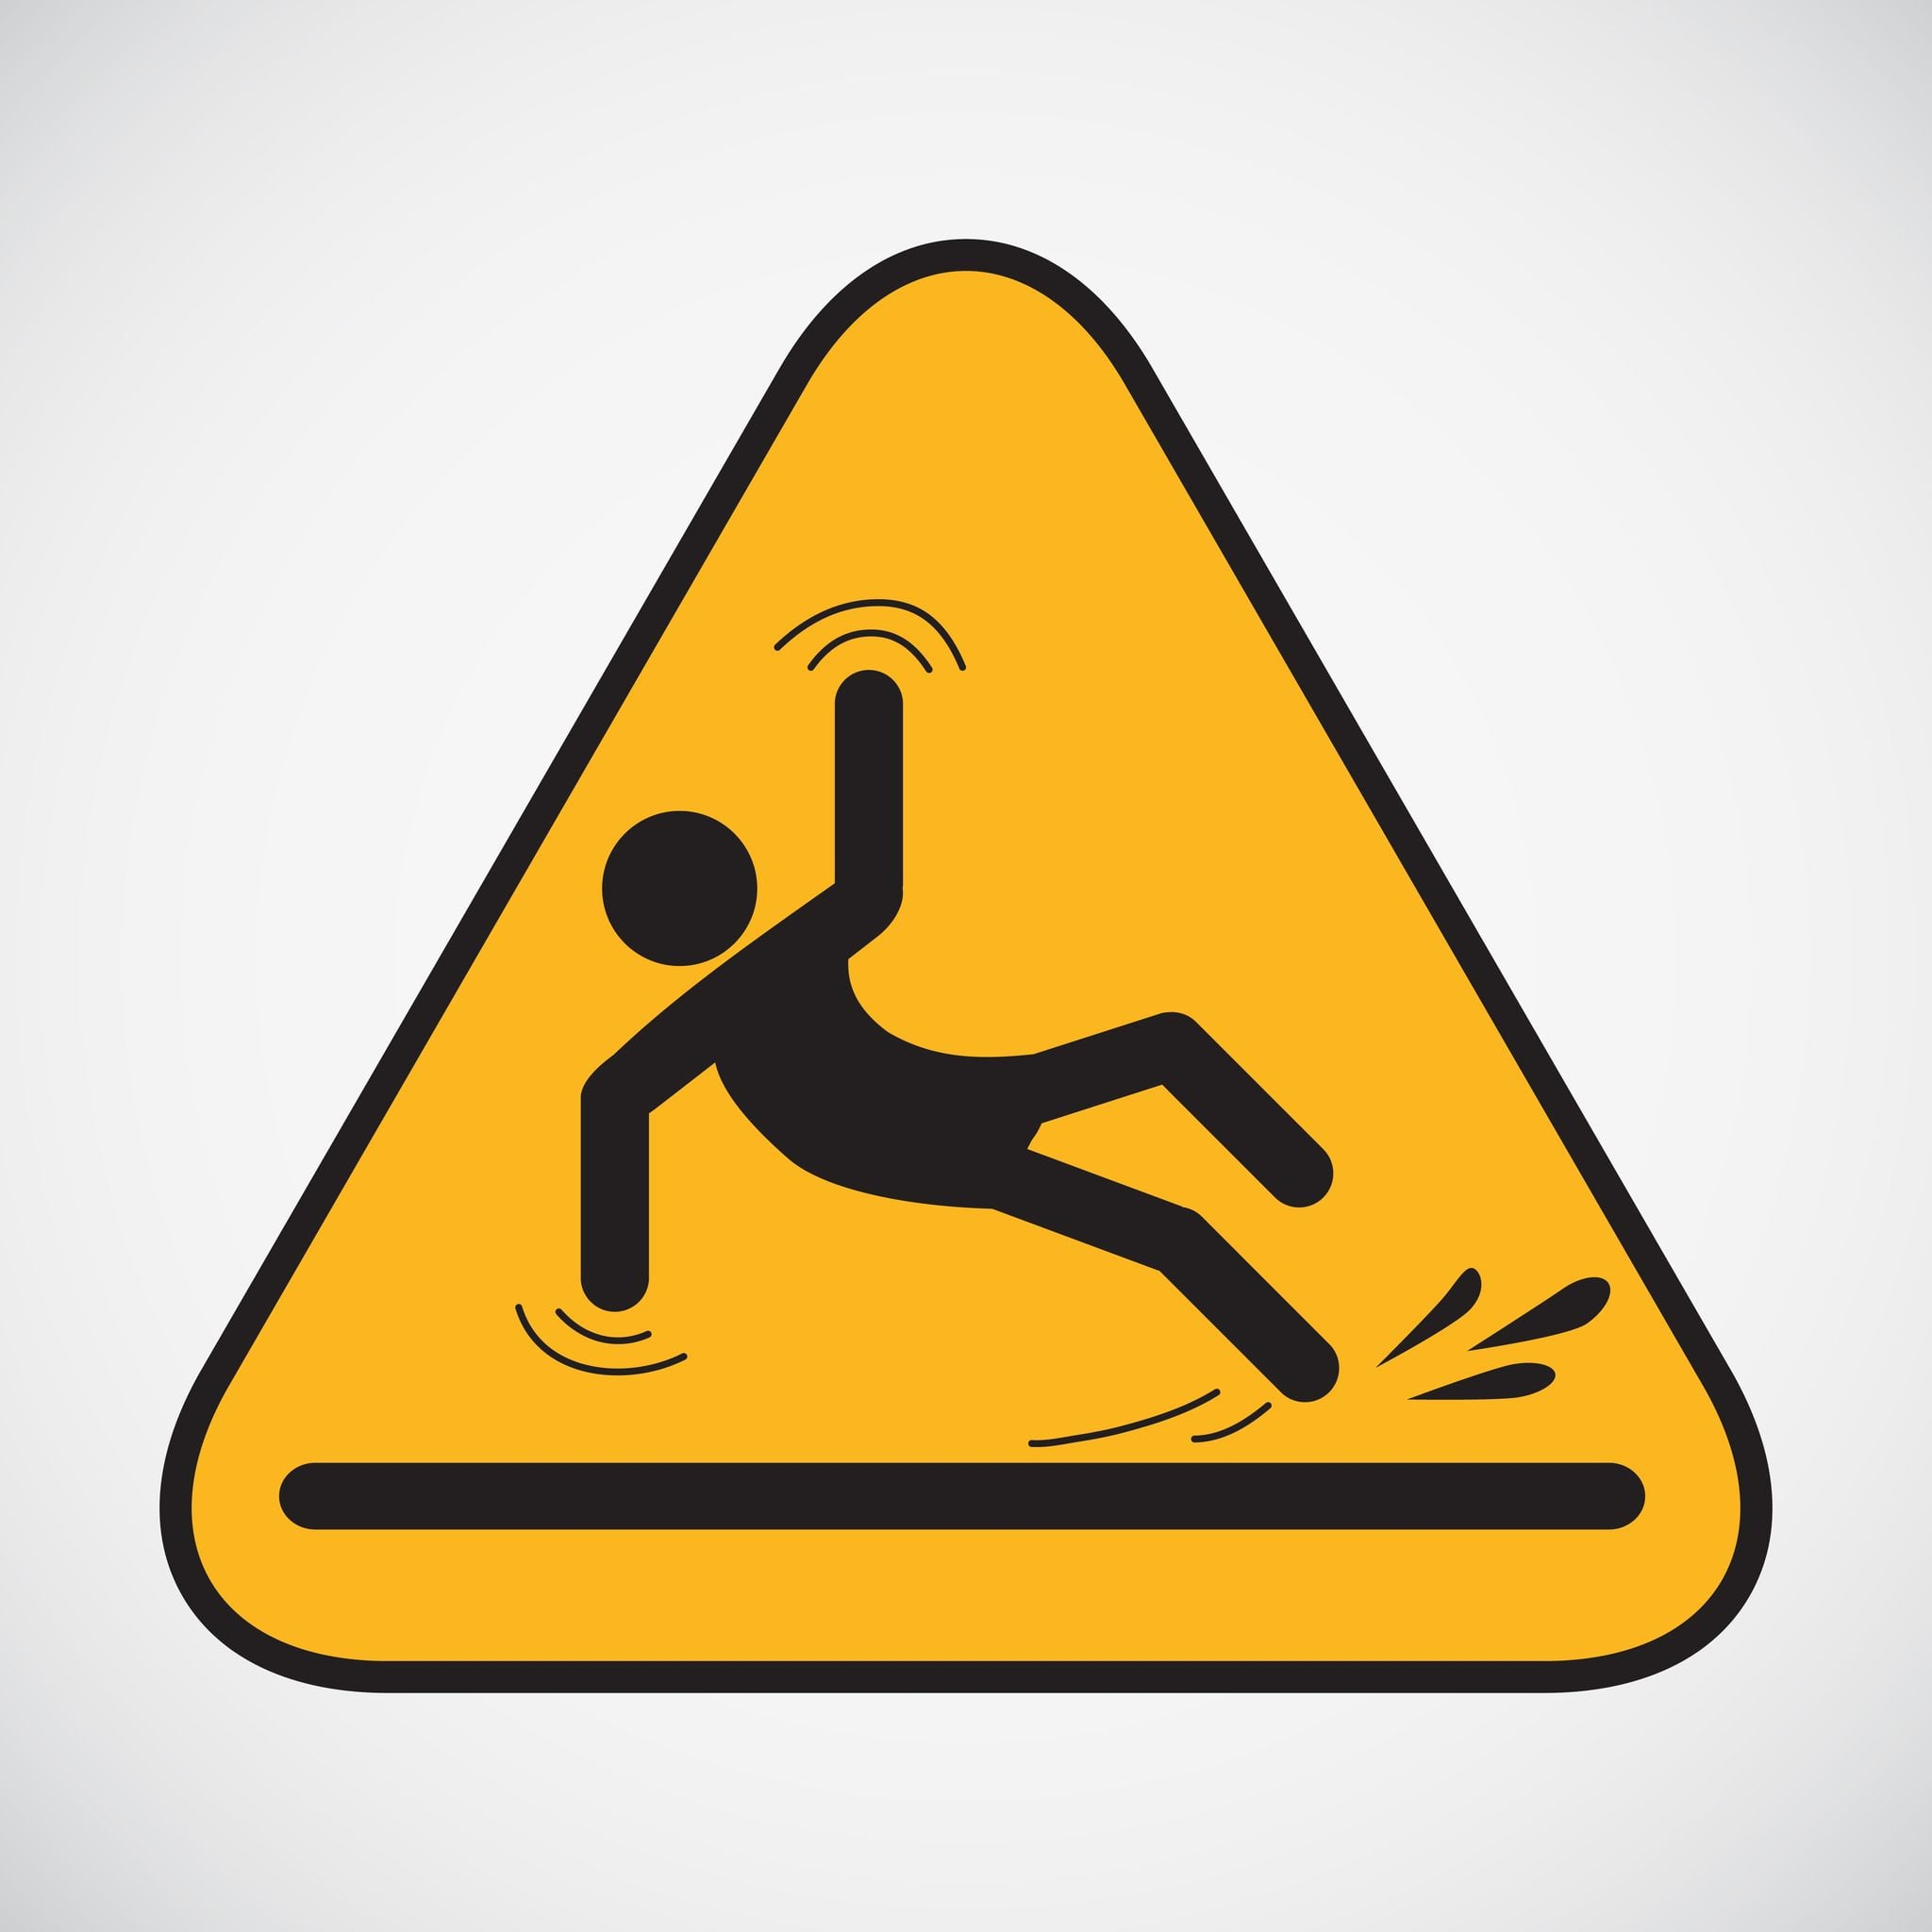 South Florida Slip and Fall Lawyers